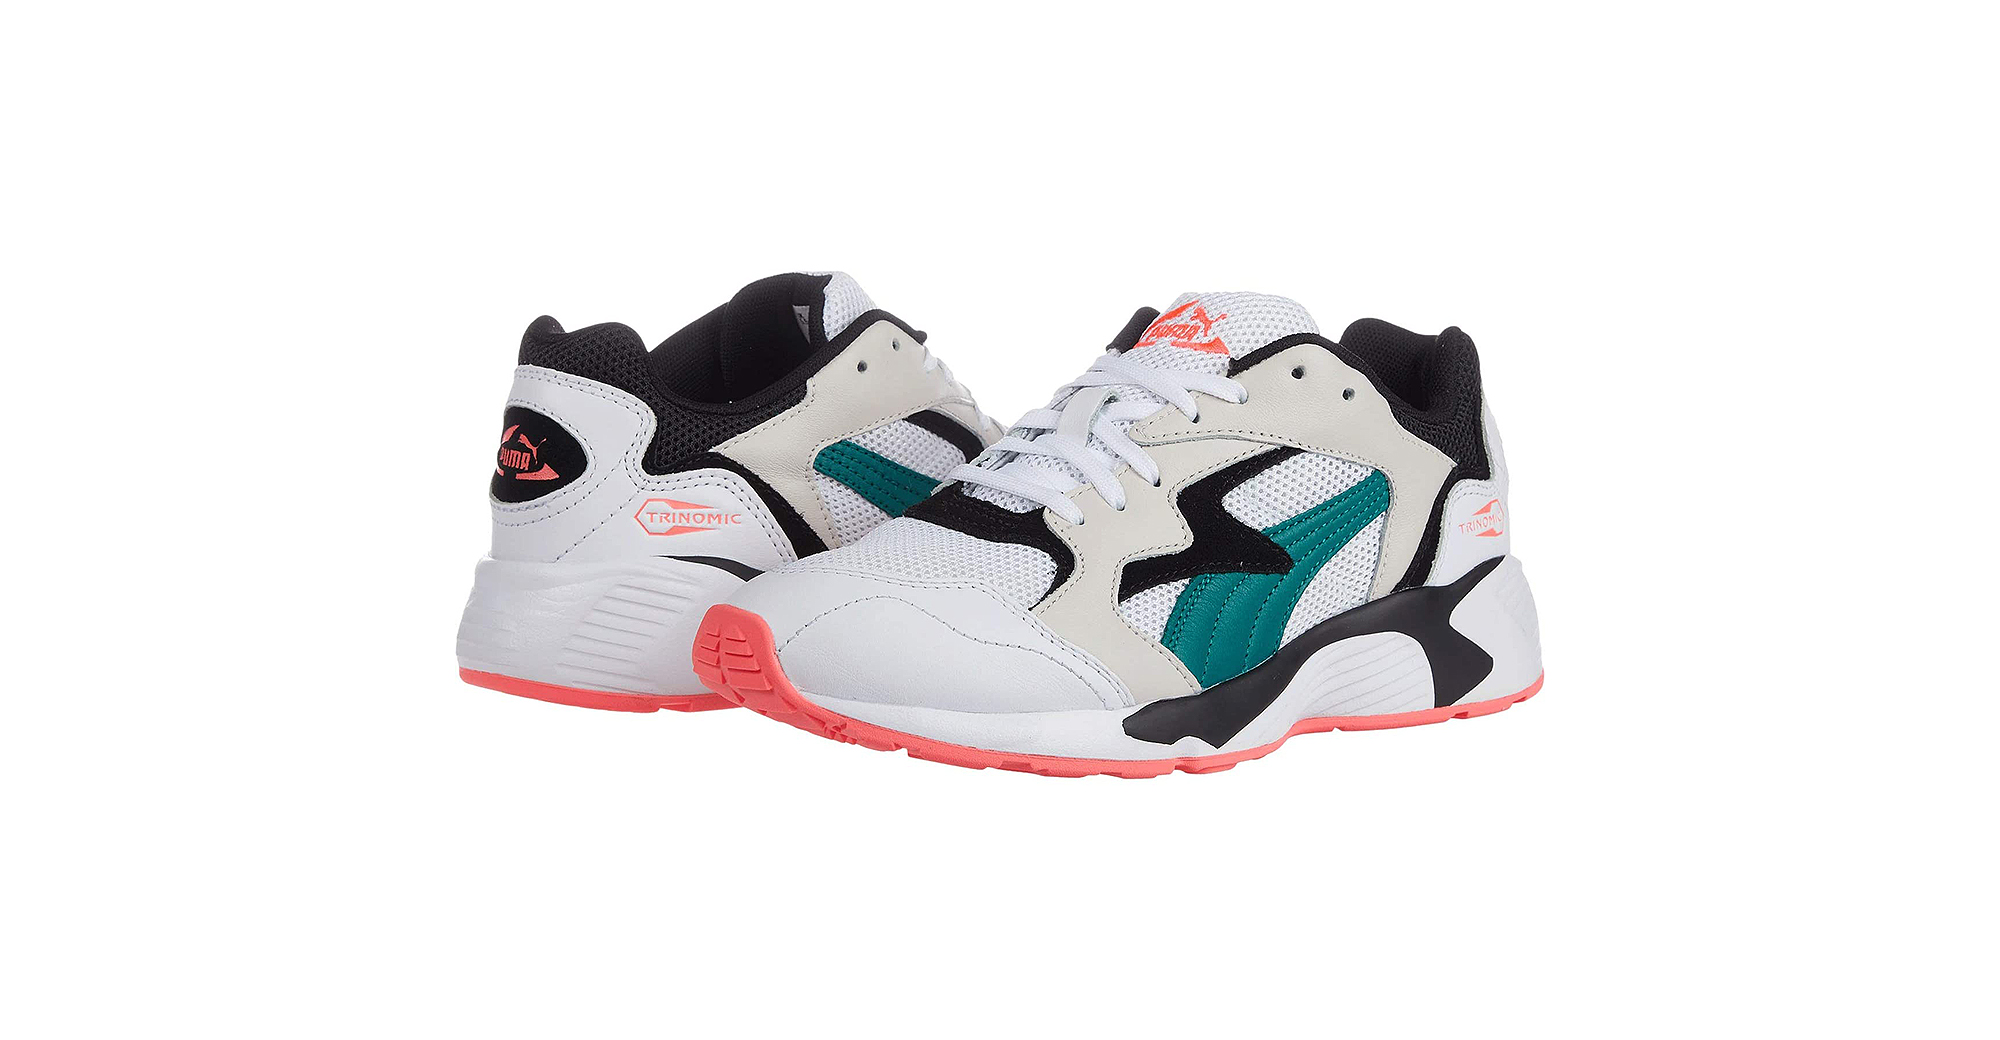 PUMA Prevail Classic sneakers